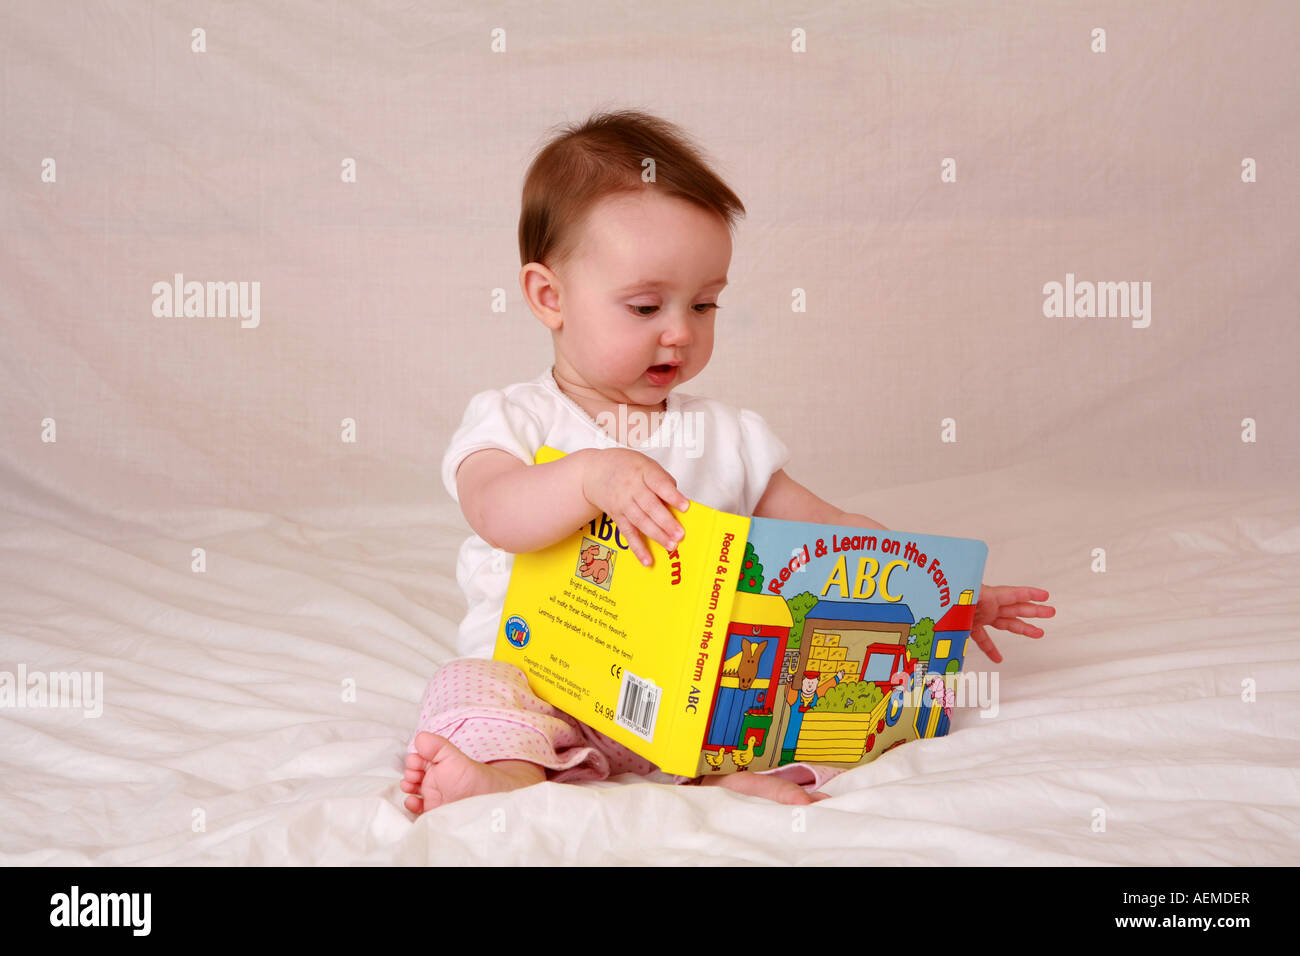 Arithmetic Book Stock Photos & Arithmetic Book Stock Images - Alamy